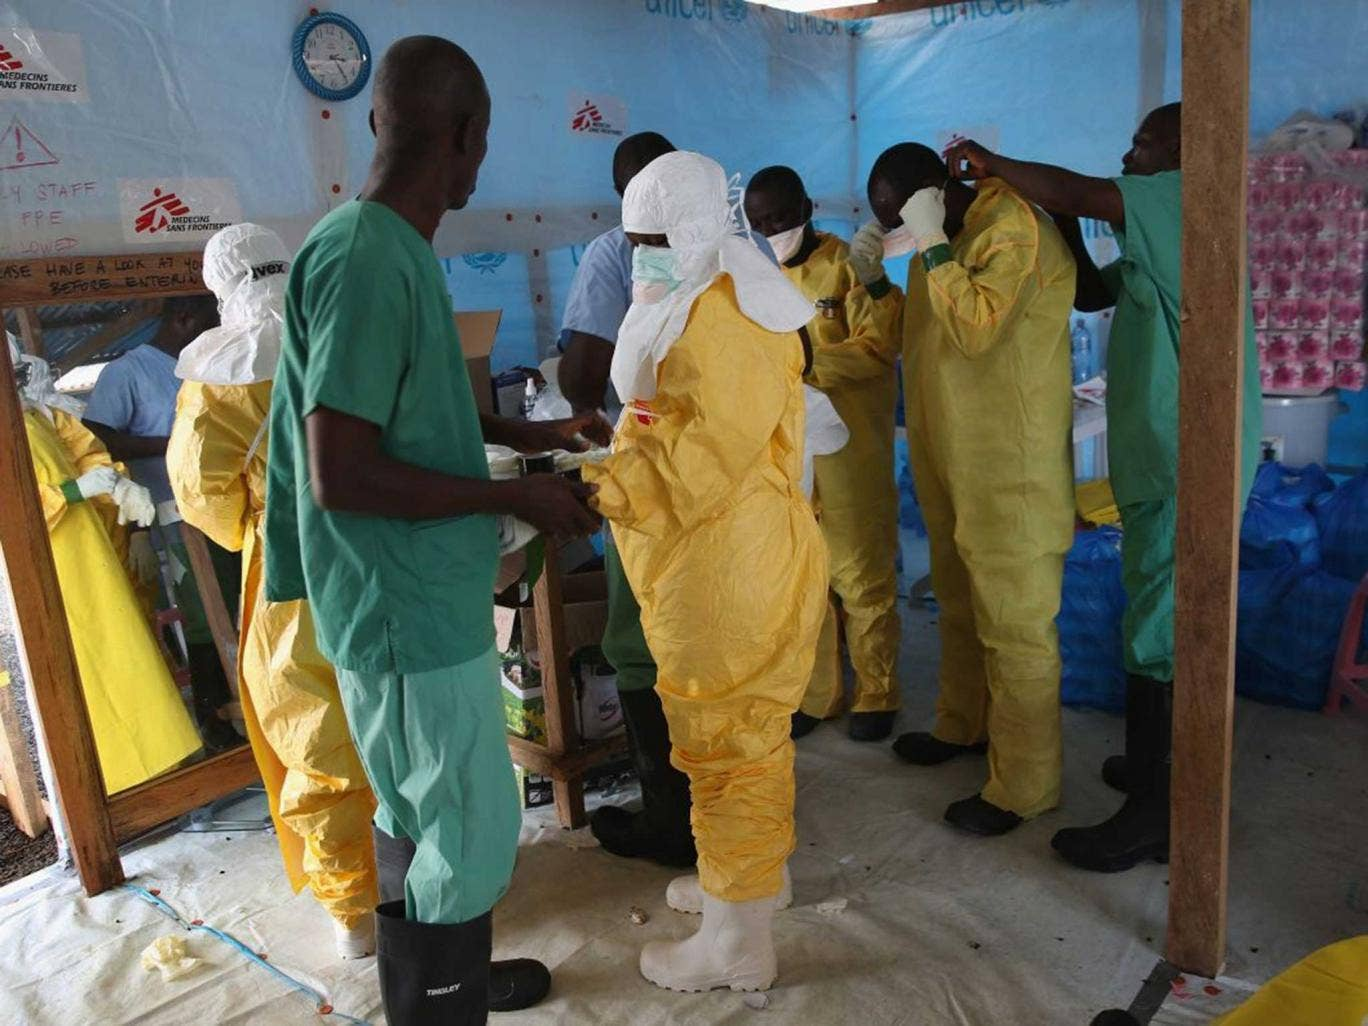 Doctors are struggling to deal with the Ebola outbreak in Liberia